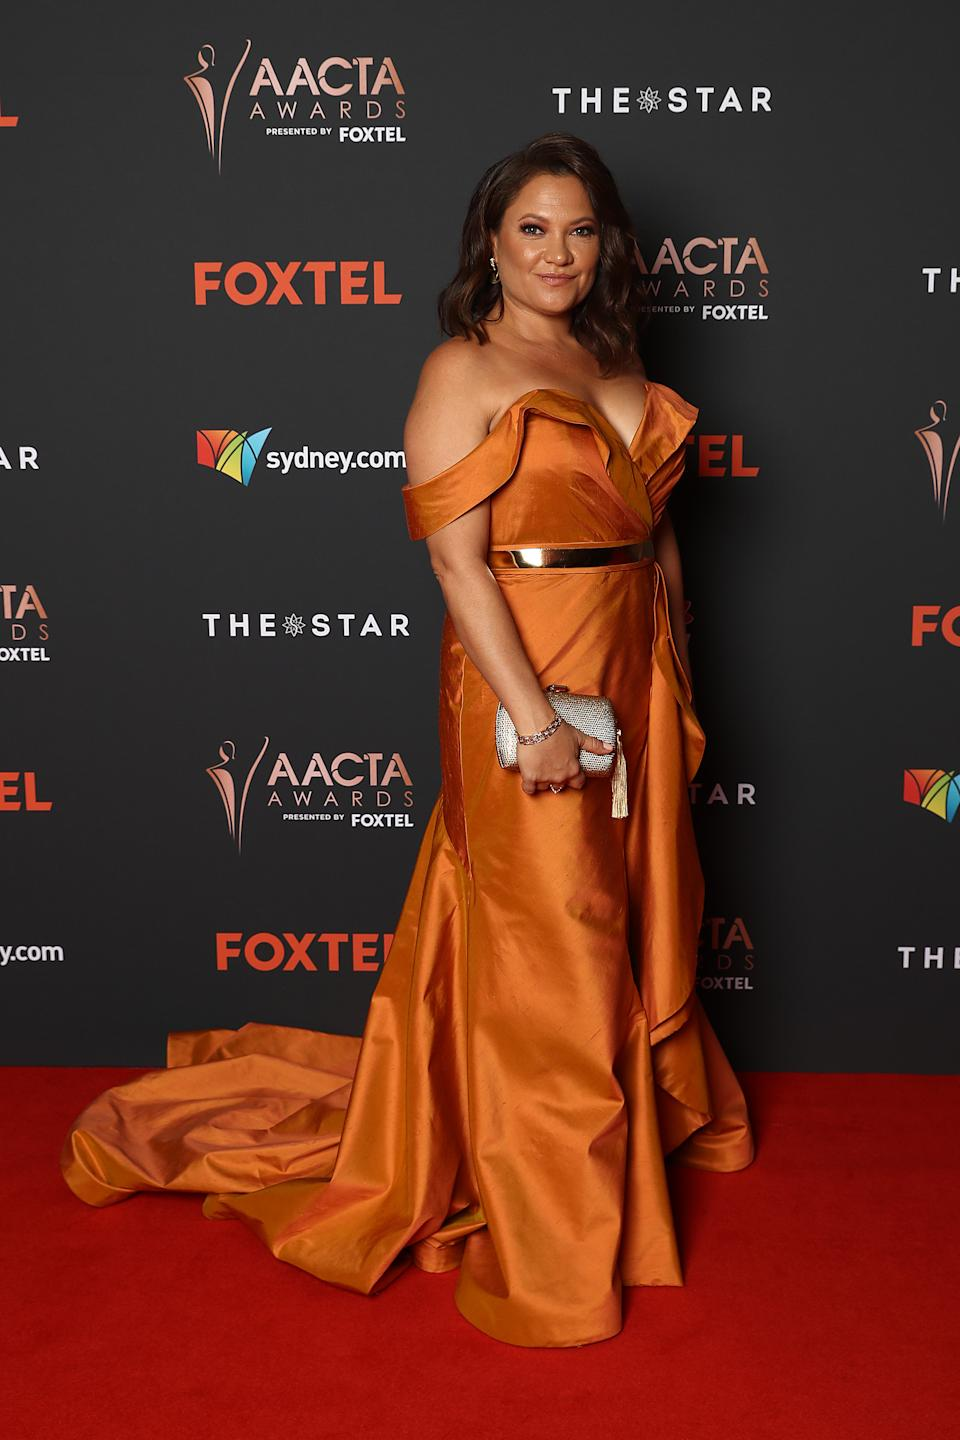 Ngaire Pigram arrives ahead of the 2020 AACTA Awards presented by Foxtel at The Star on November 30, 2020 in Sydney, Australia.